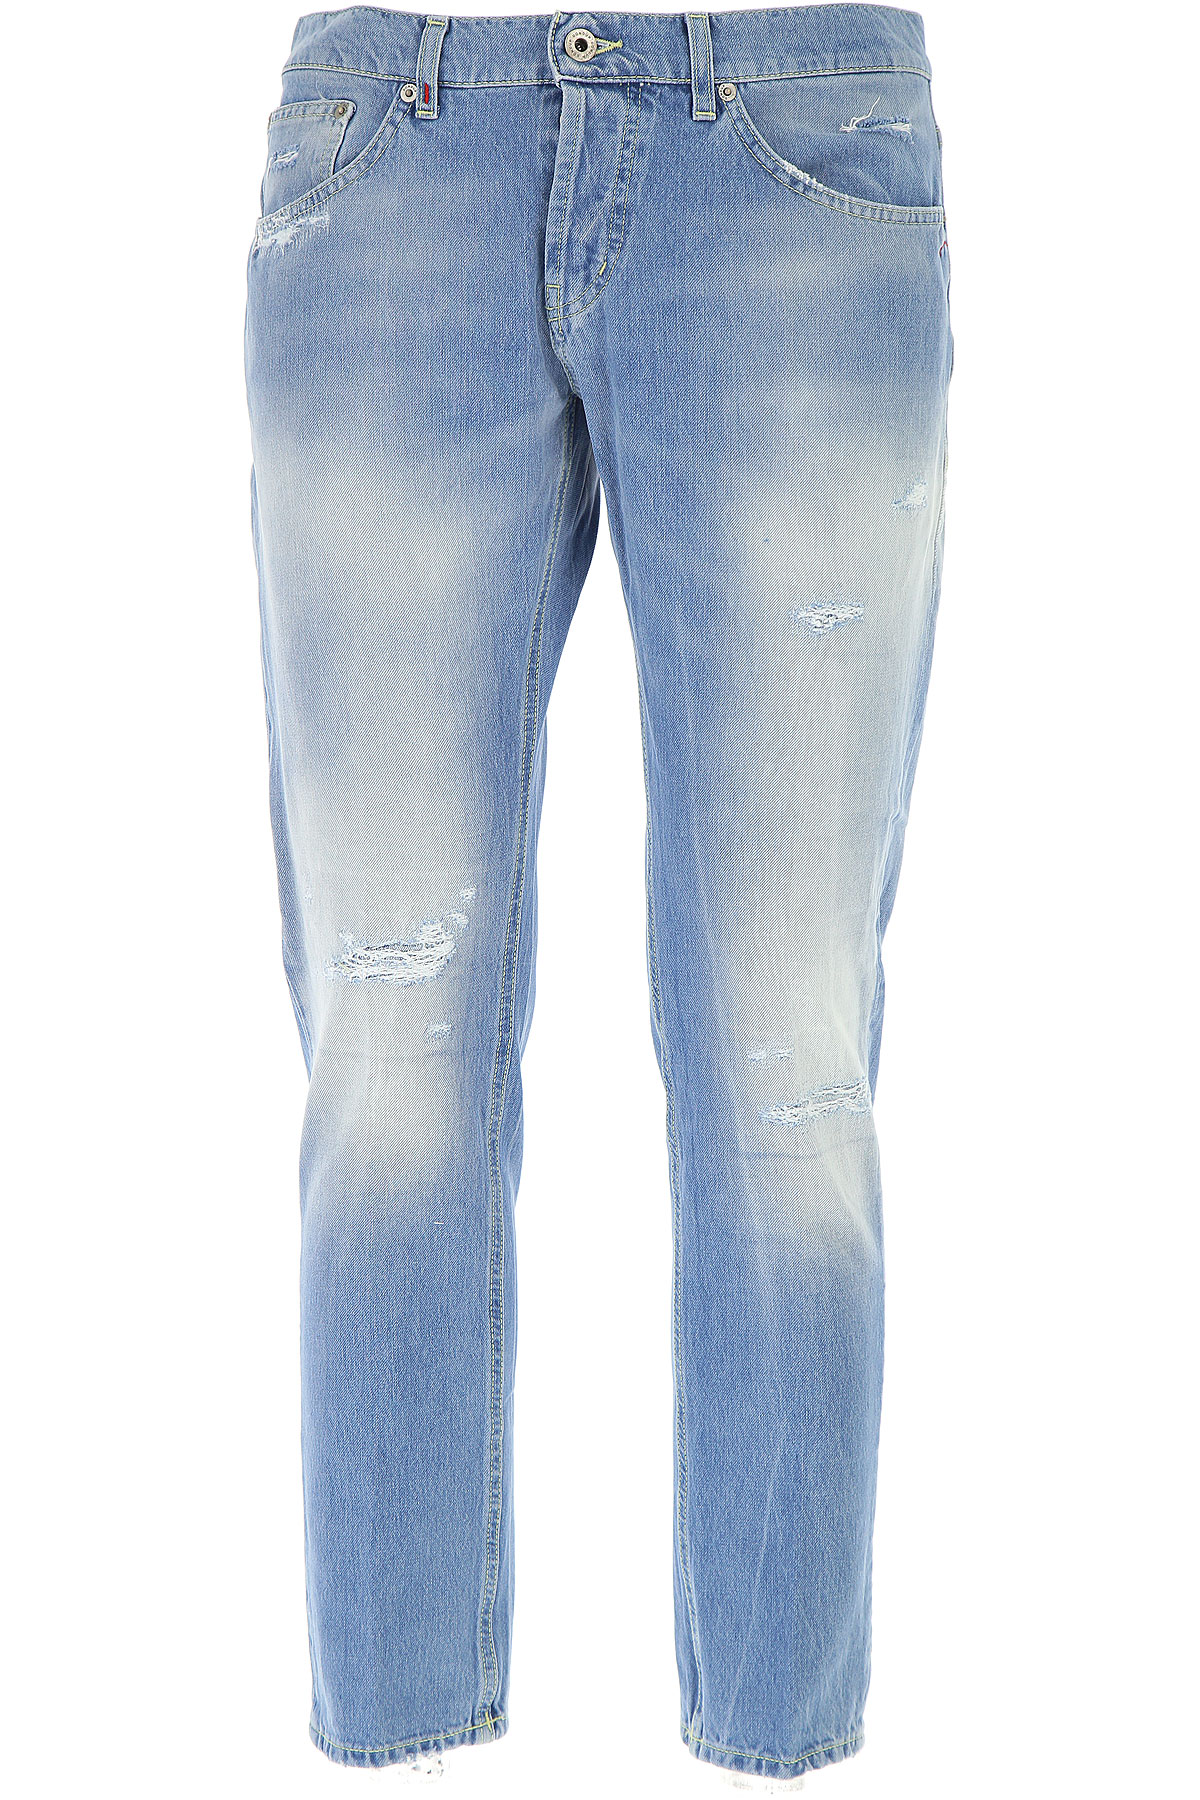 Dondup Jeans On Sale in Outlet, Denim, Cotton, 2017, 30 35